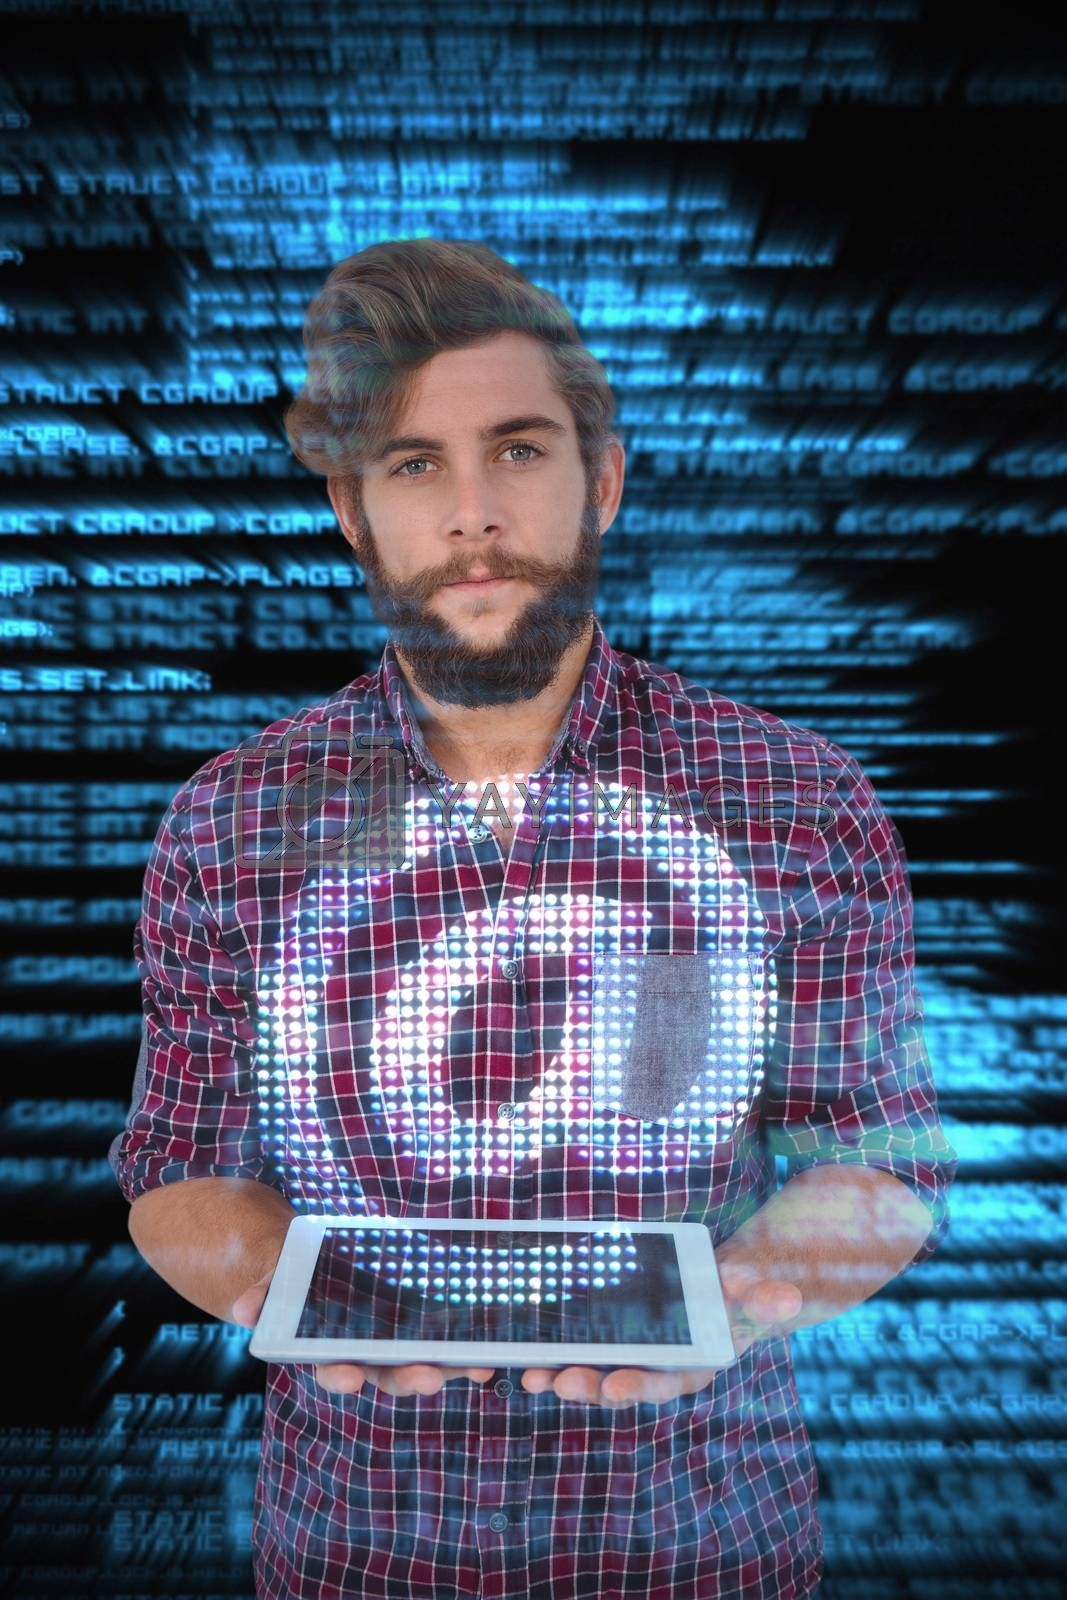 Composite image of portrait of hipster holding digital tablet by Wavebreakmedia